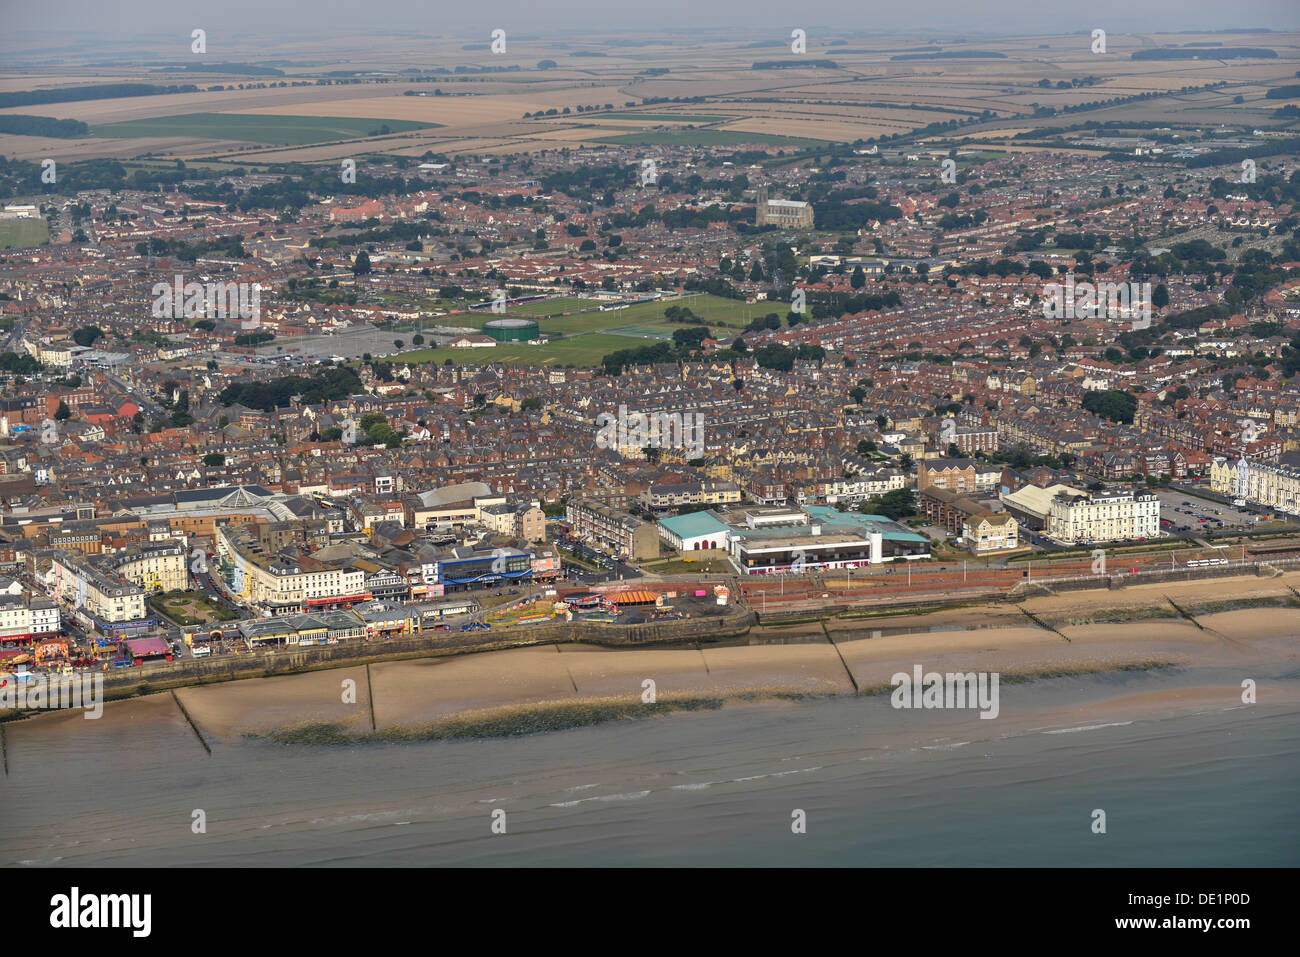 Aerial photograph of Bridlington Sea front - Stock Image